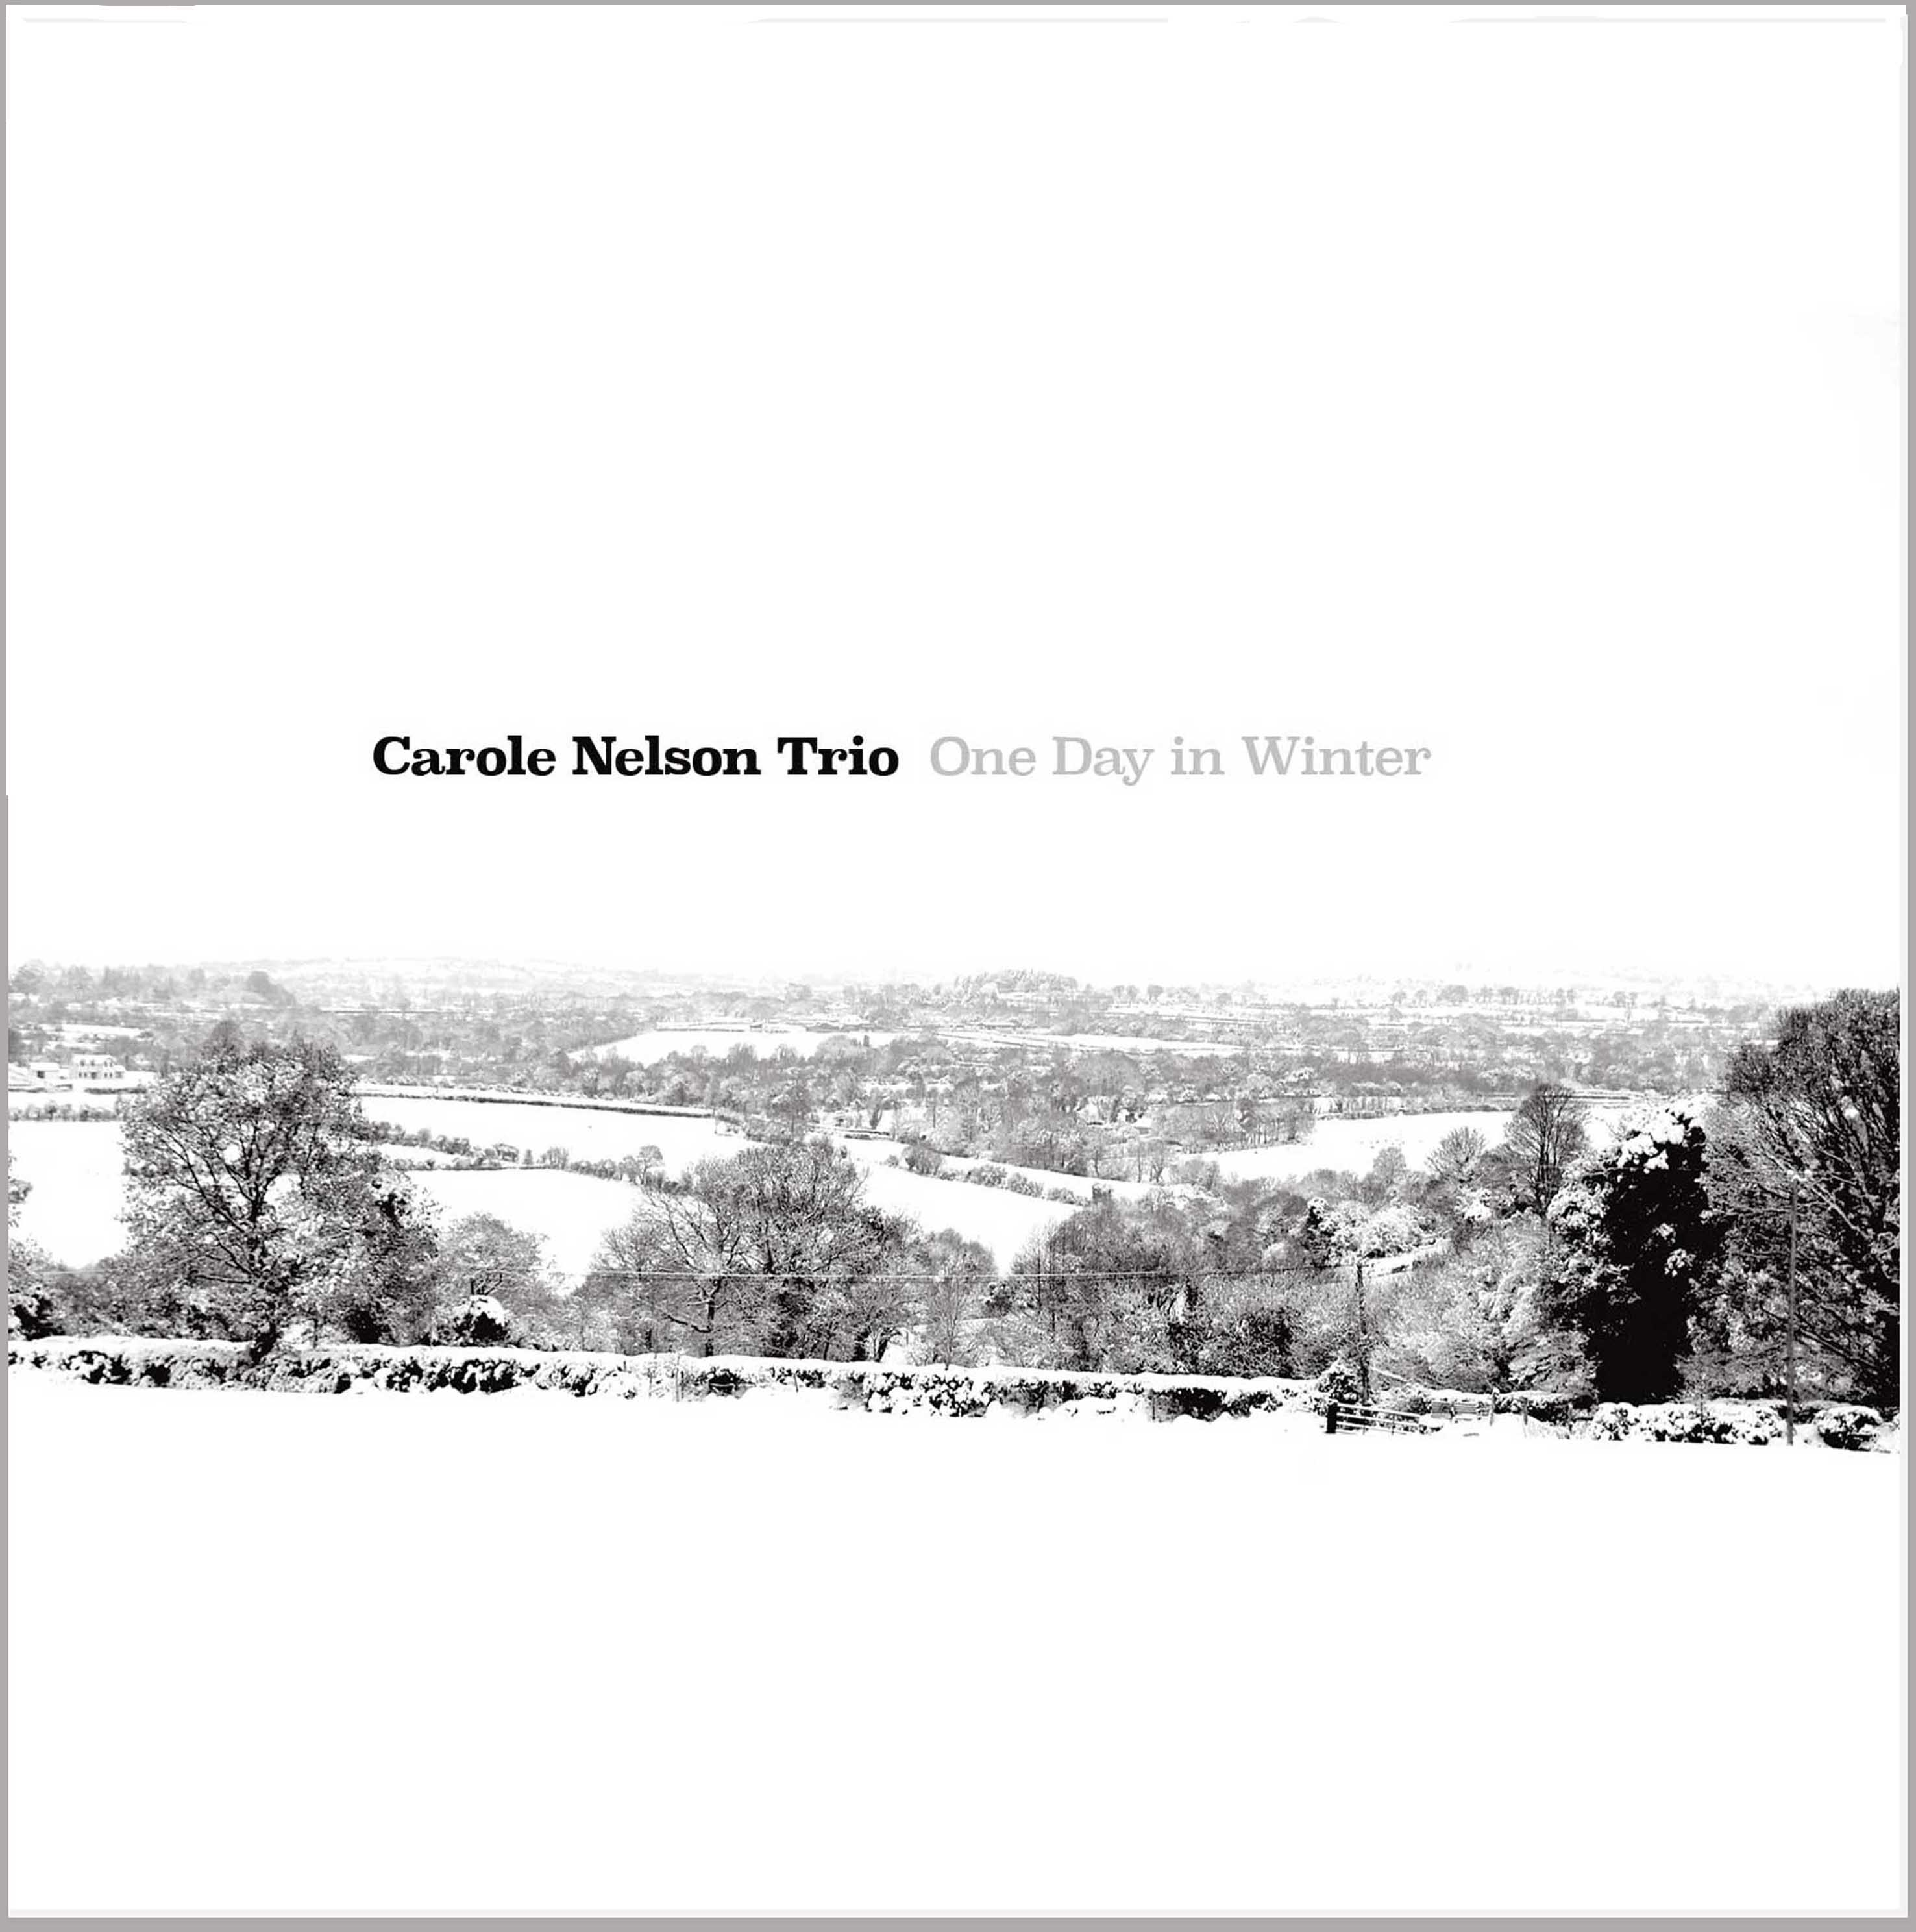 Carole Nelson Trio - One Day in Winter - Album Review